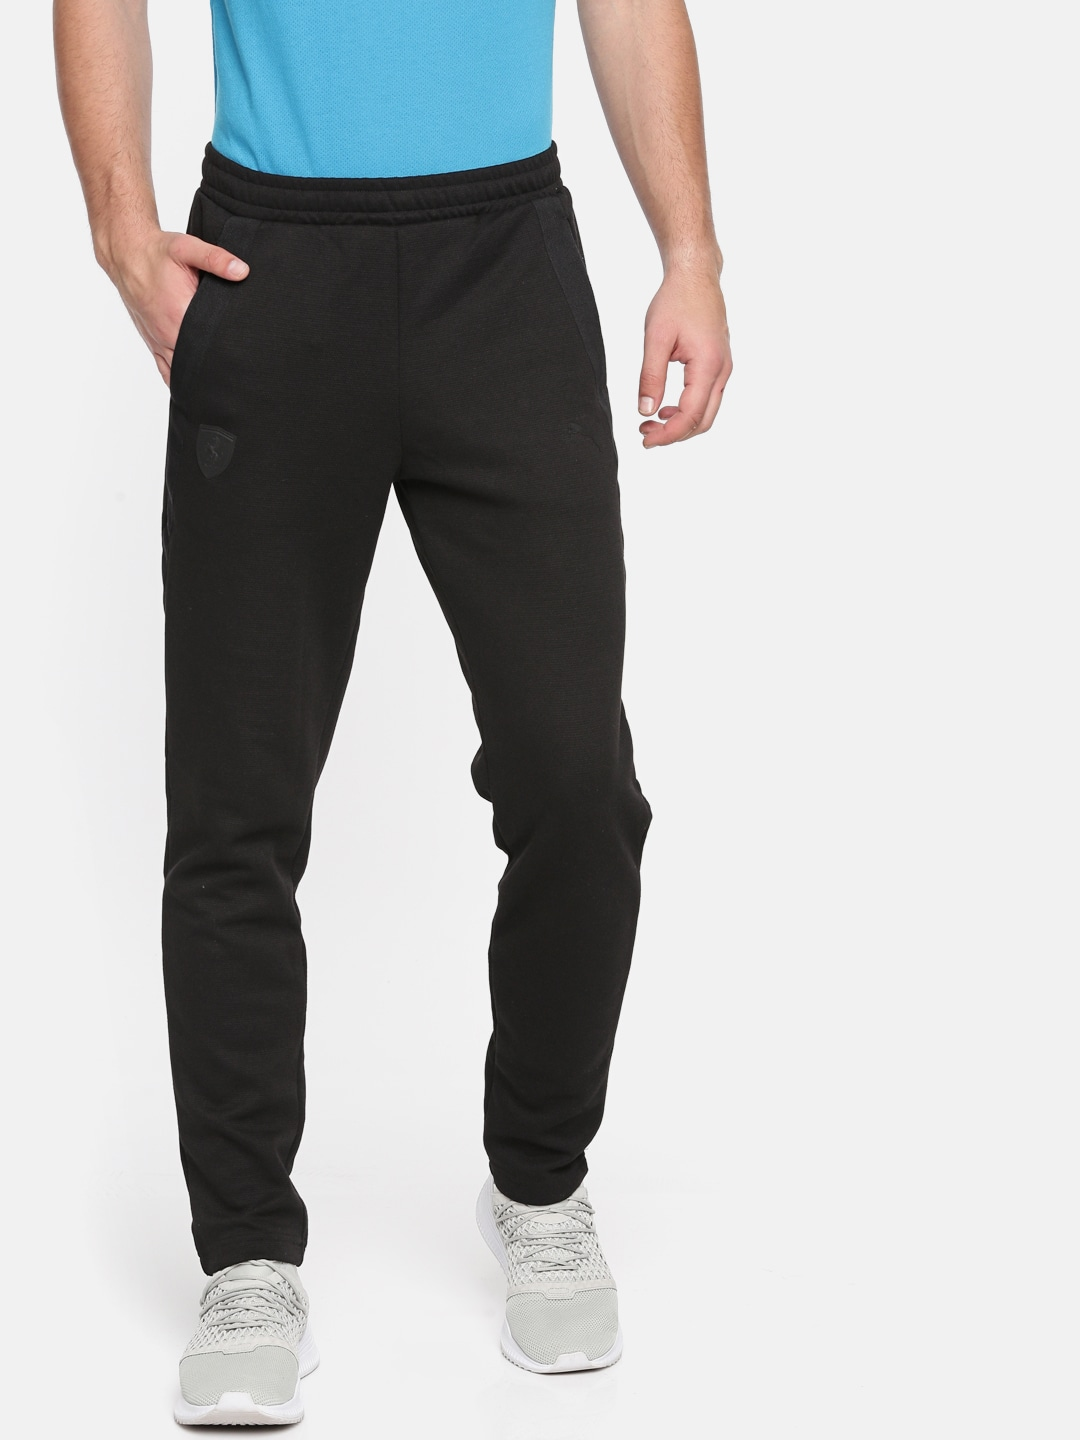 db1227422a64 Puma Hip Hop Track Pants - Buy Puma Hip Hop Track Pants online in India